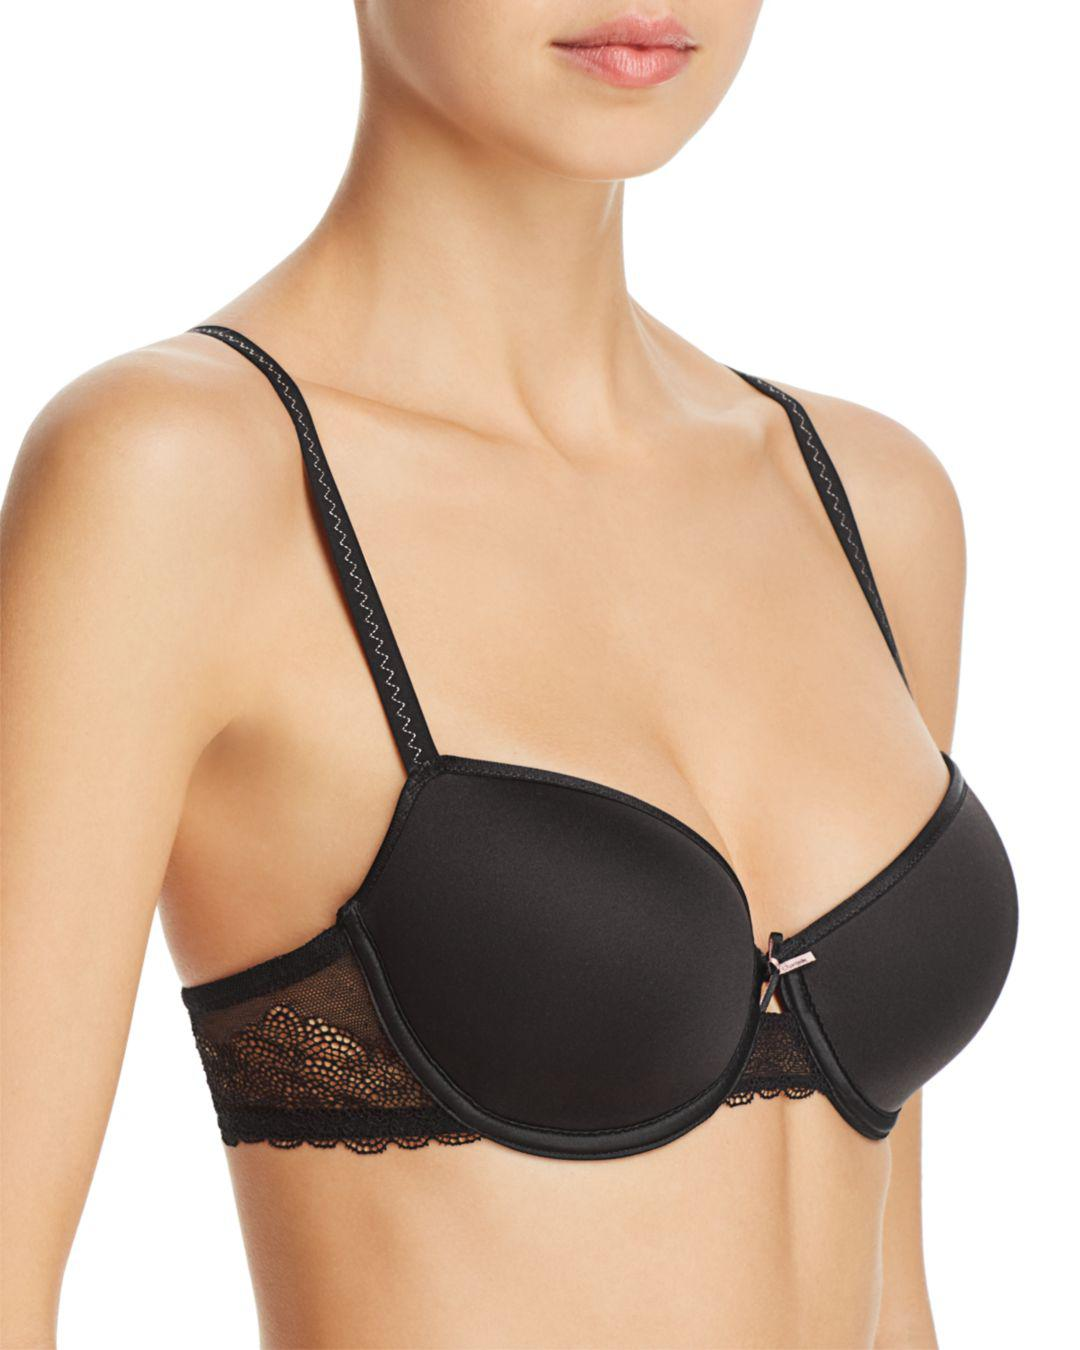 bc8117674b Lyst - Chantelle Le Marais Low Cut Smooth Custom Fit Bra in Black ...